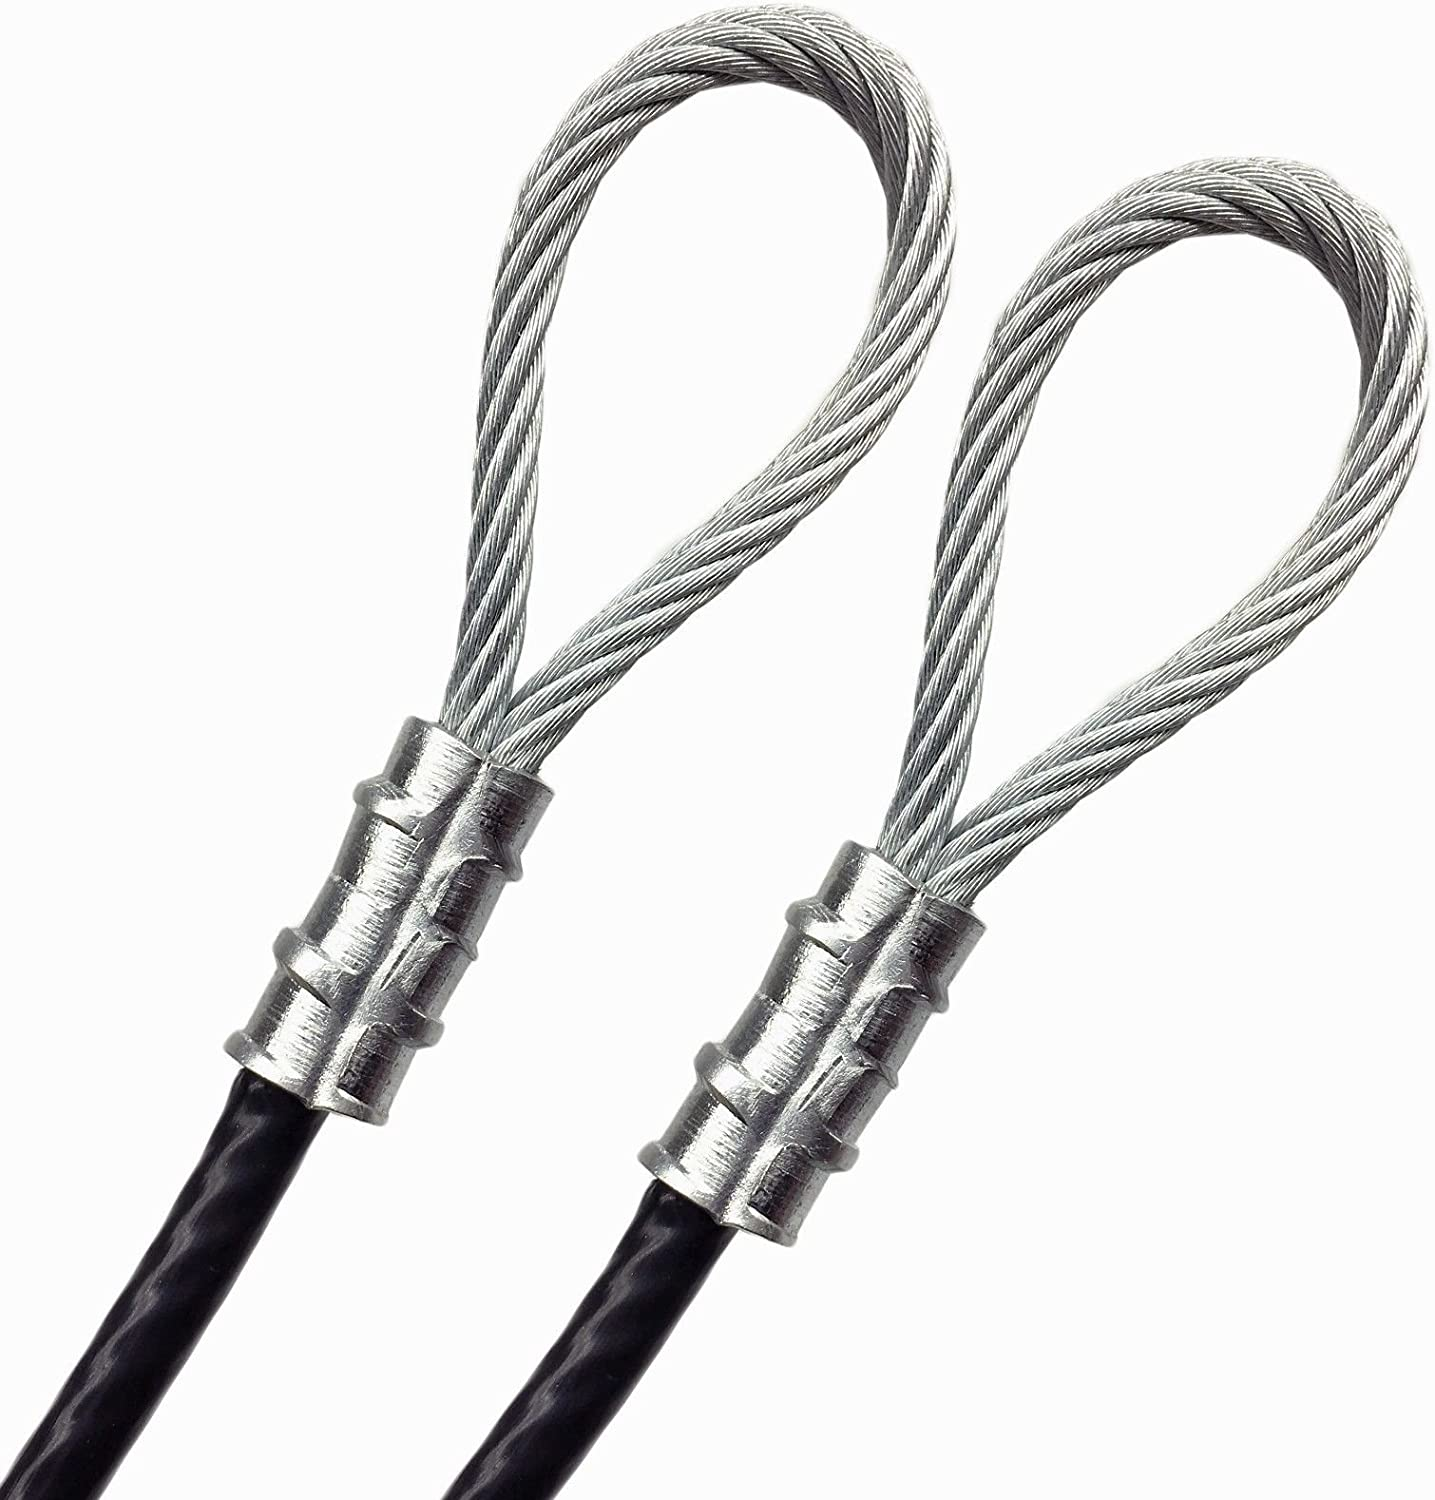 """7x7 Strand 1//16/"""" Core Clothesline Suspension Safety Guide DIY Cable 5 feet, Clear Double Loop with Aluminum Sleeve Custom Cut Galvanized Steel 1//8/"""" Vinyl Coated Indoor Outdoor Wire Rope PSI"""